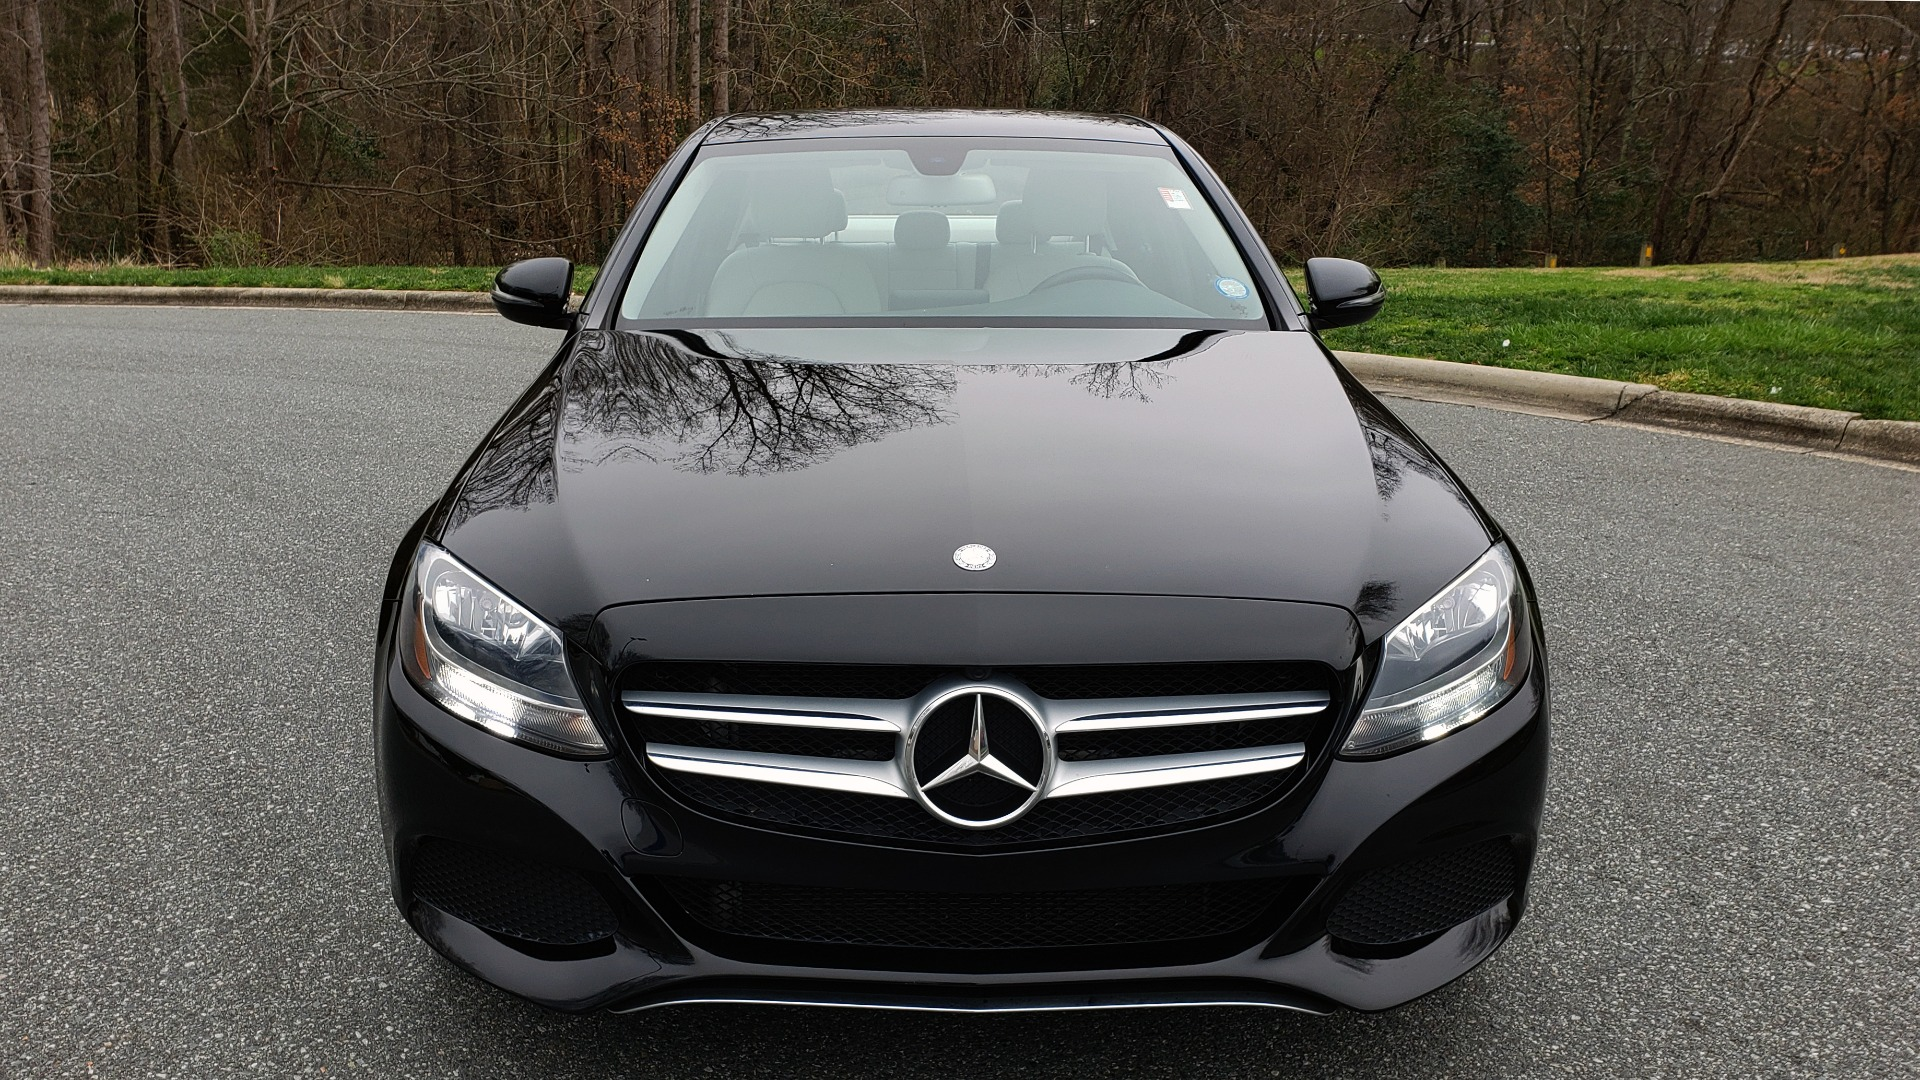 Used 2017 Mercedes-Benz C-CLASS C 300 PREMIUM / HTD STS / SUNROOF / REARVIEW for sale Sold at Formula Imports in Charlotte NC 28227 20